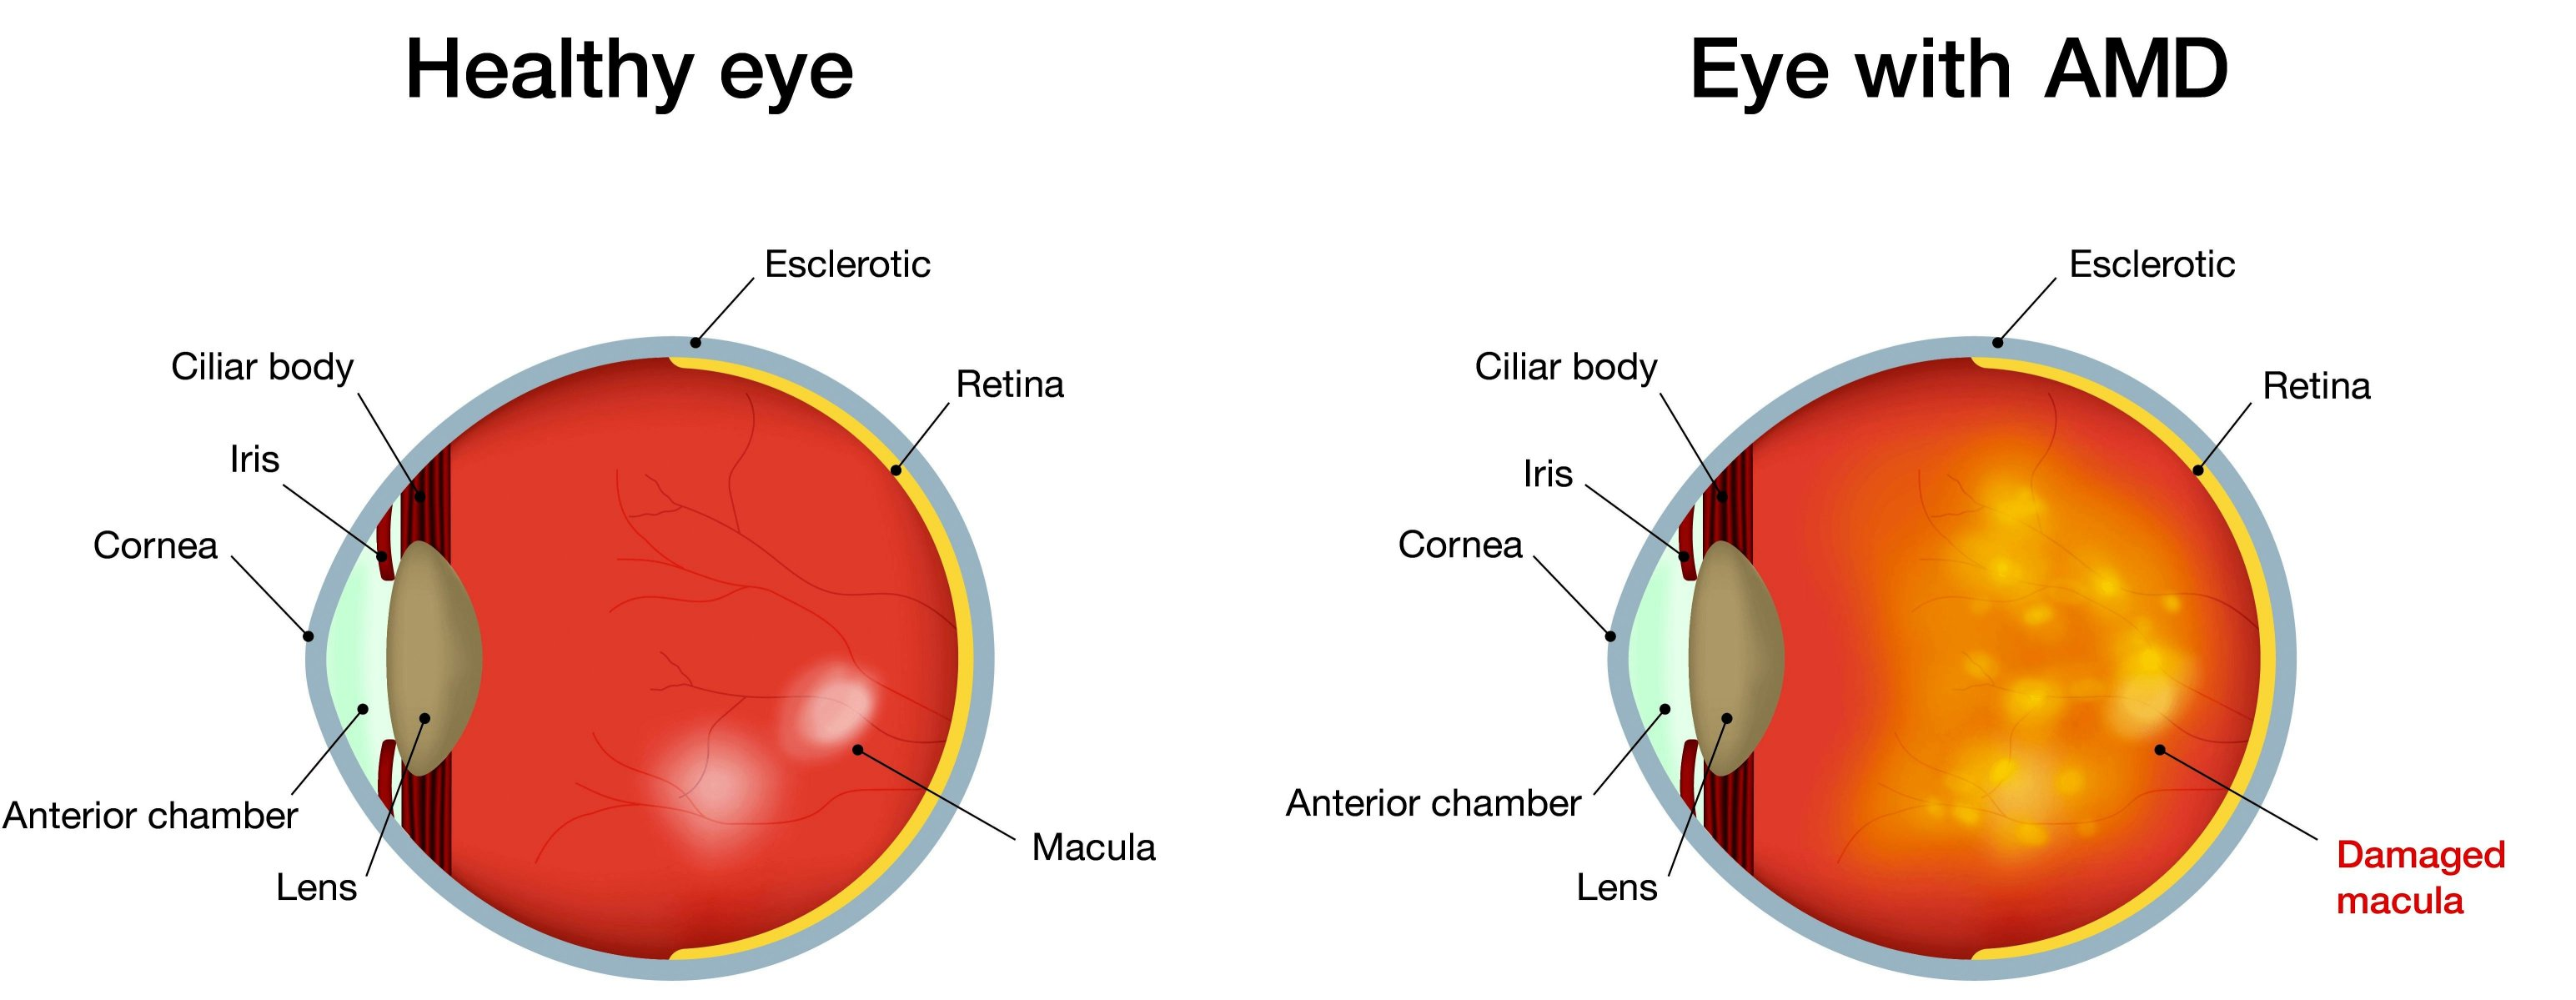 Age Related Macular Degeneration Google image from http://www.dignity-eyecare.co.uk/wp-content/uploads/2017/01/mak-degenation-image-tiny.png